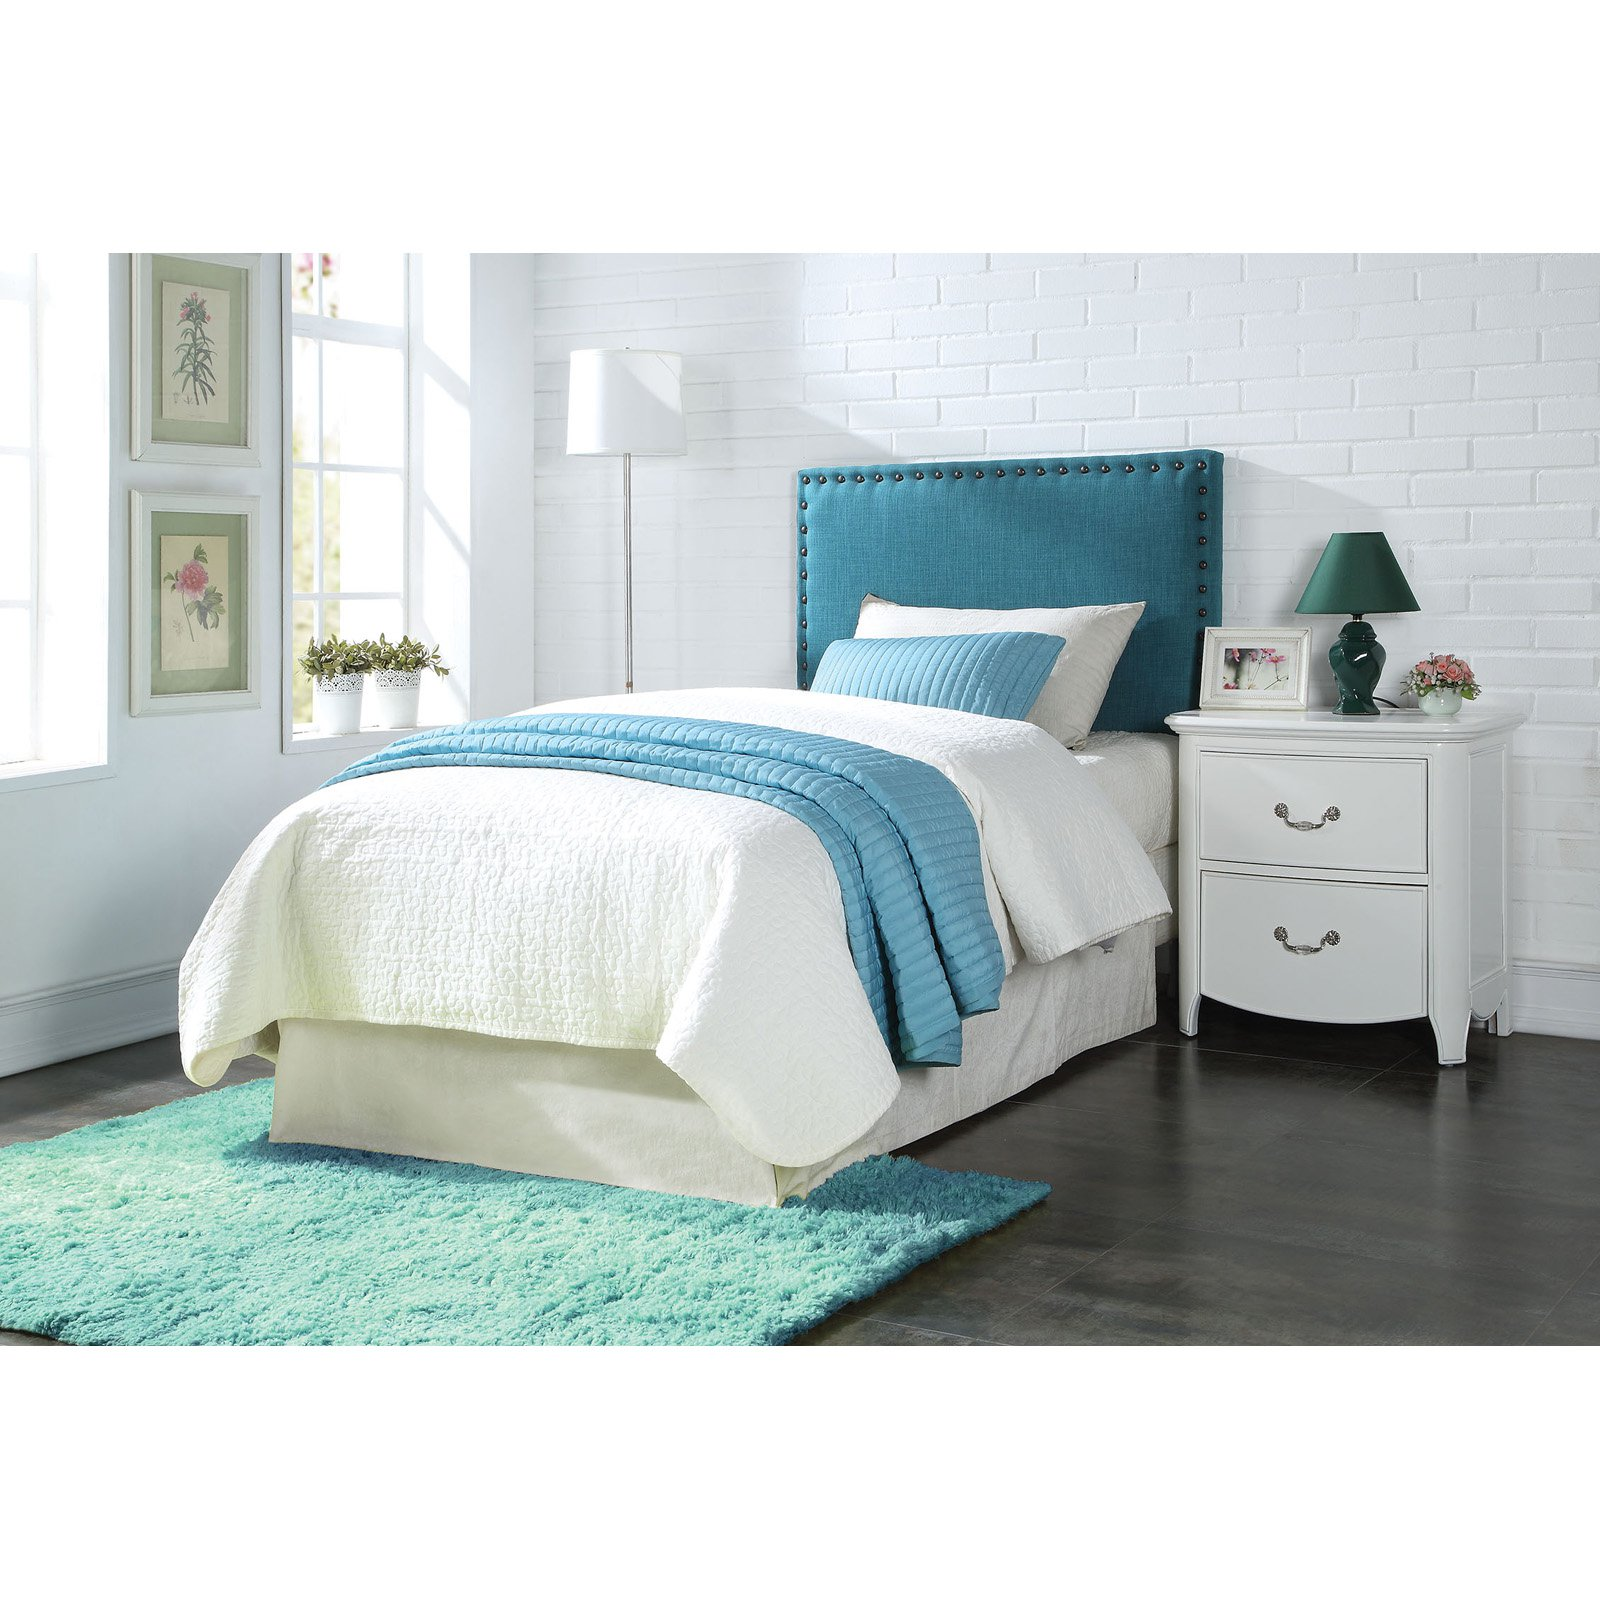 ACME Furniture Sabina Blue Linen Twin Headboard